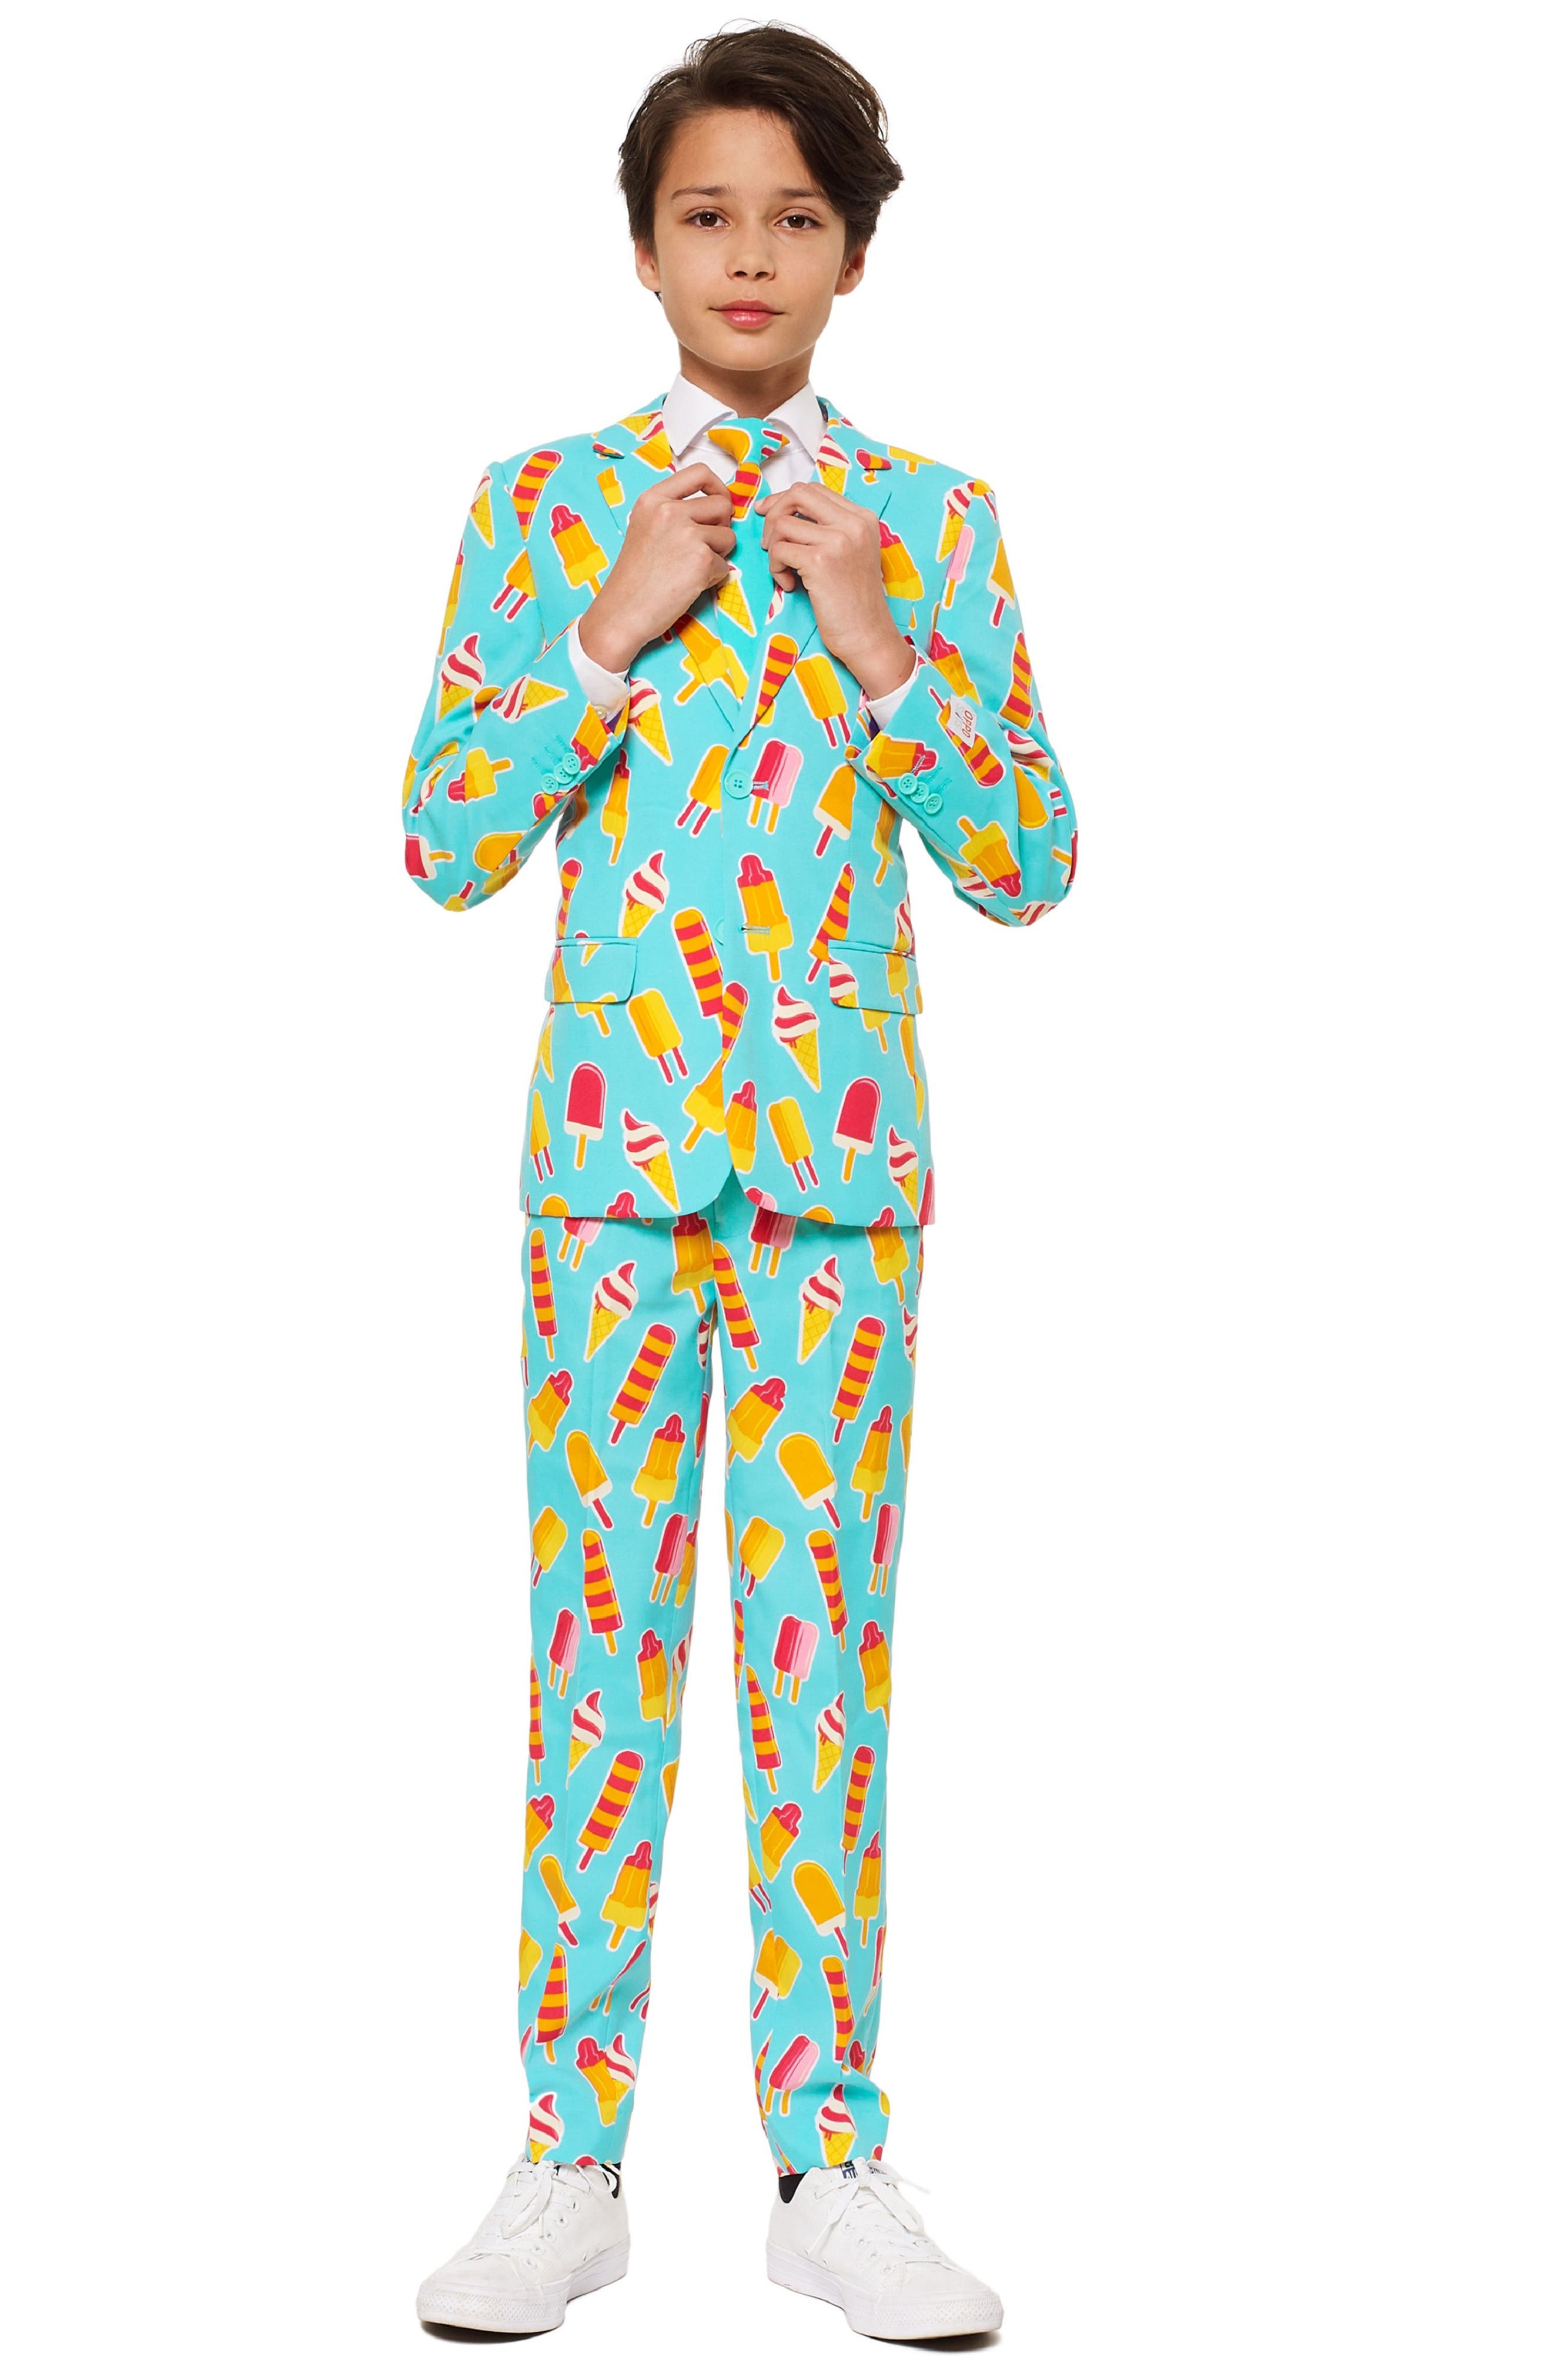 Cool Cones Two-Piece Suit with Tie,                         Main,                         color, BLUE/ GREEN